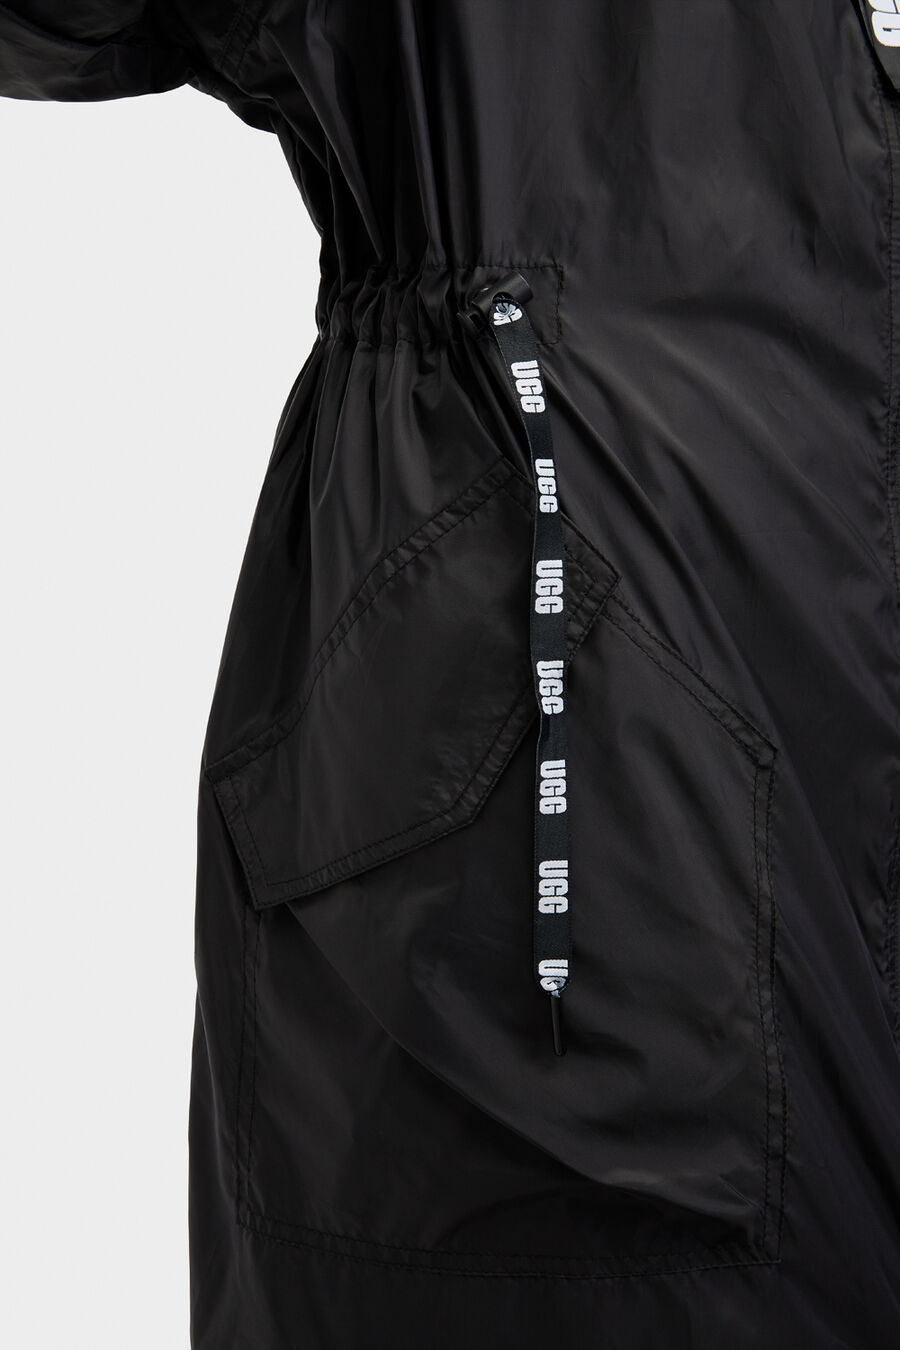 Carinna Hooded Anorak - Image 5 of 5